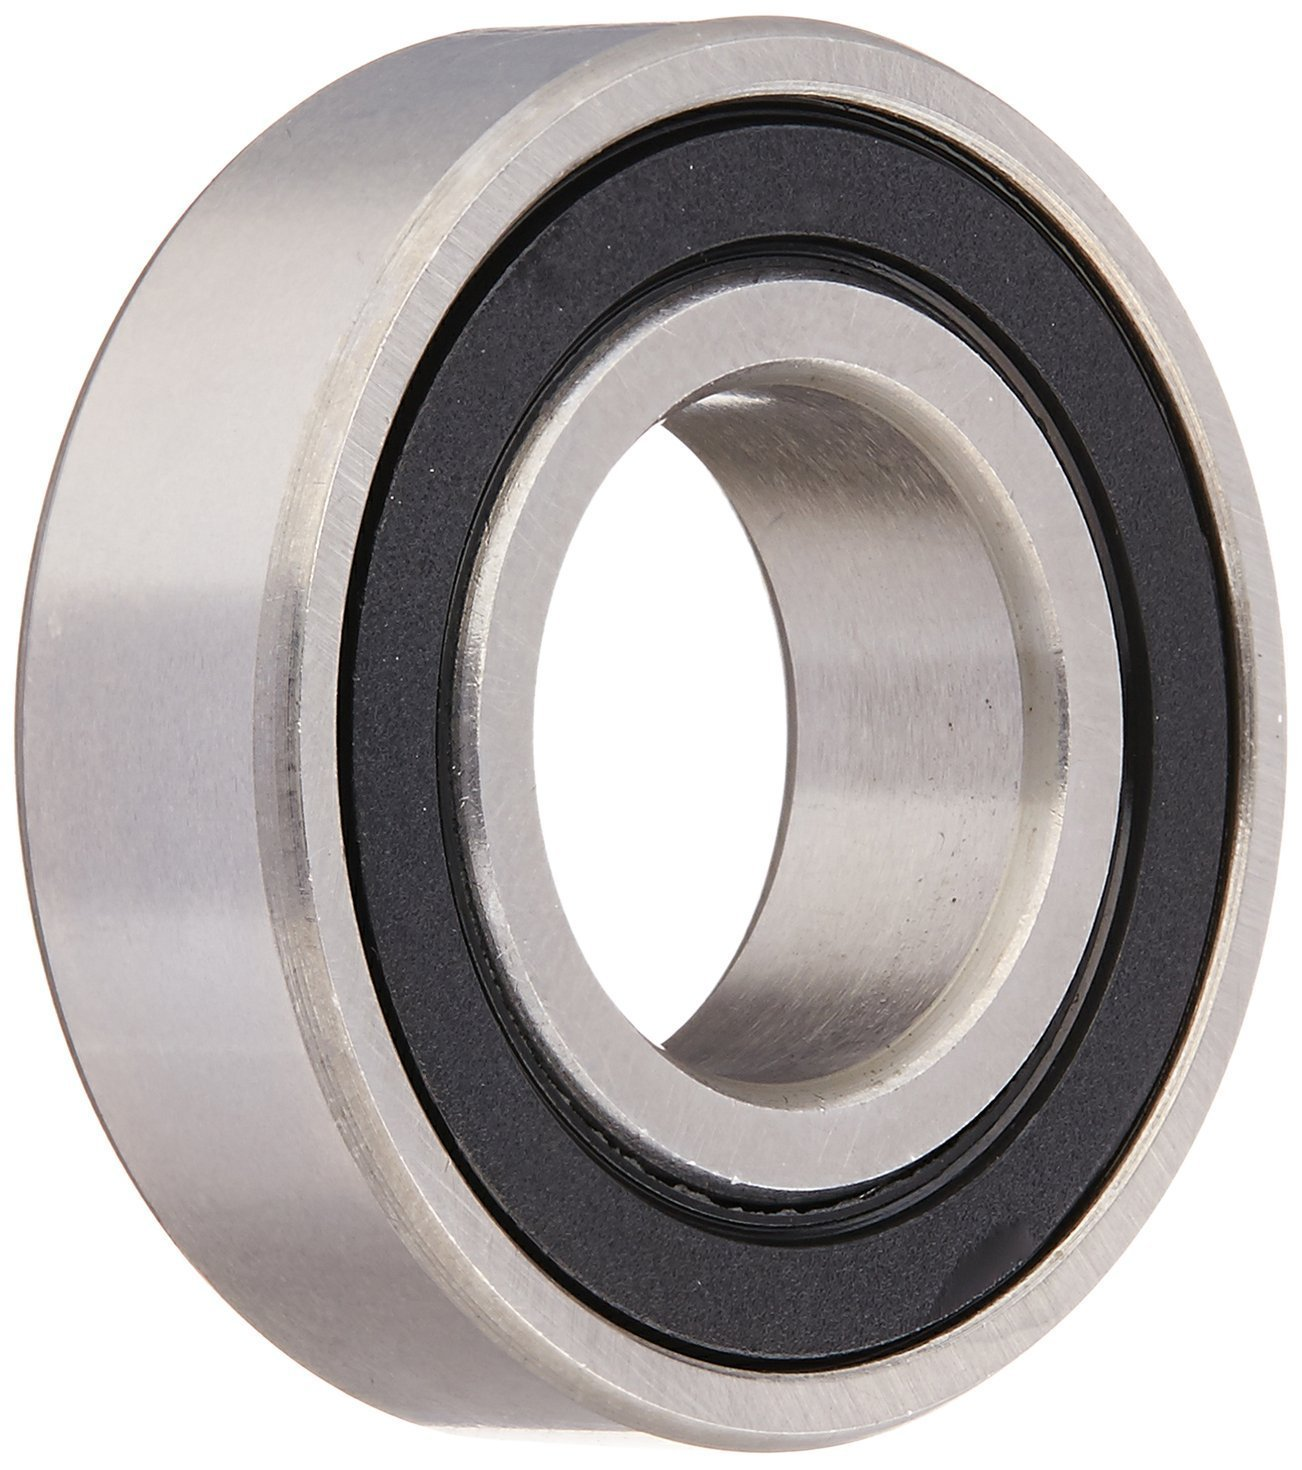 6003-2RS Sealed Bearings 17x35x10 Ball Bearings / Pre-Lubricated-300 Bearings by BC Precision